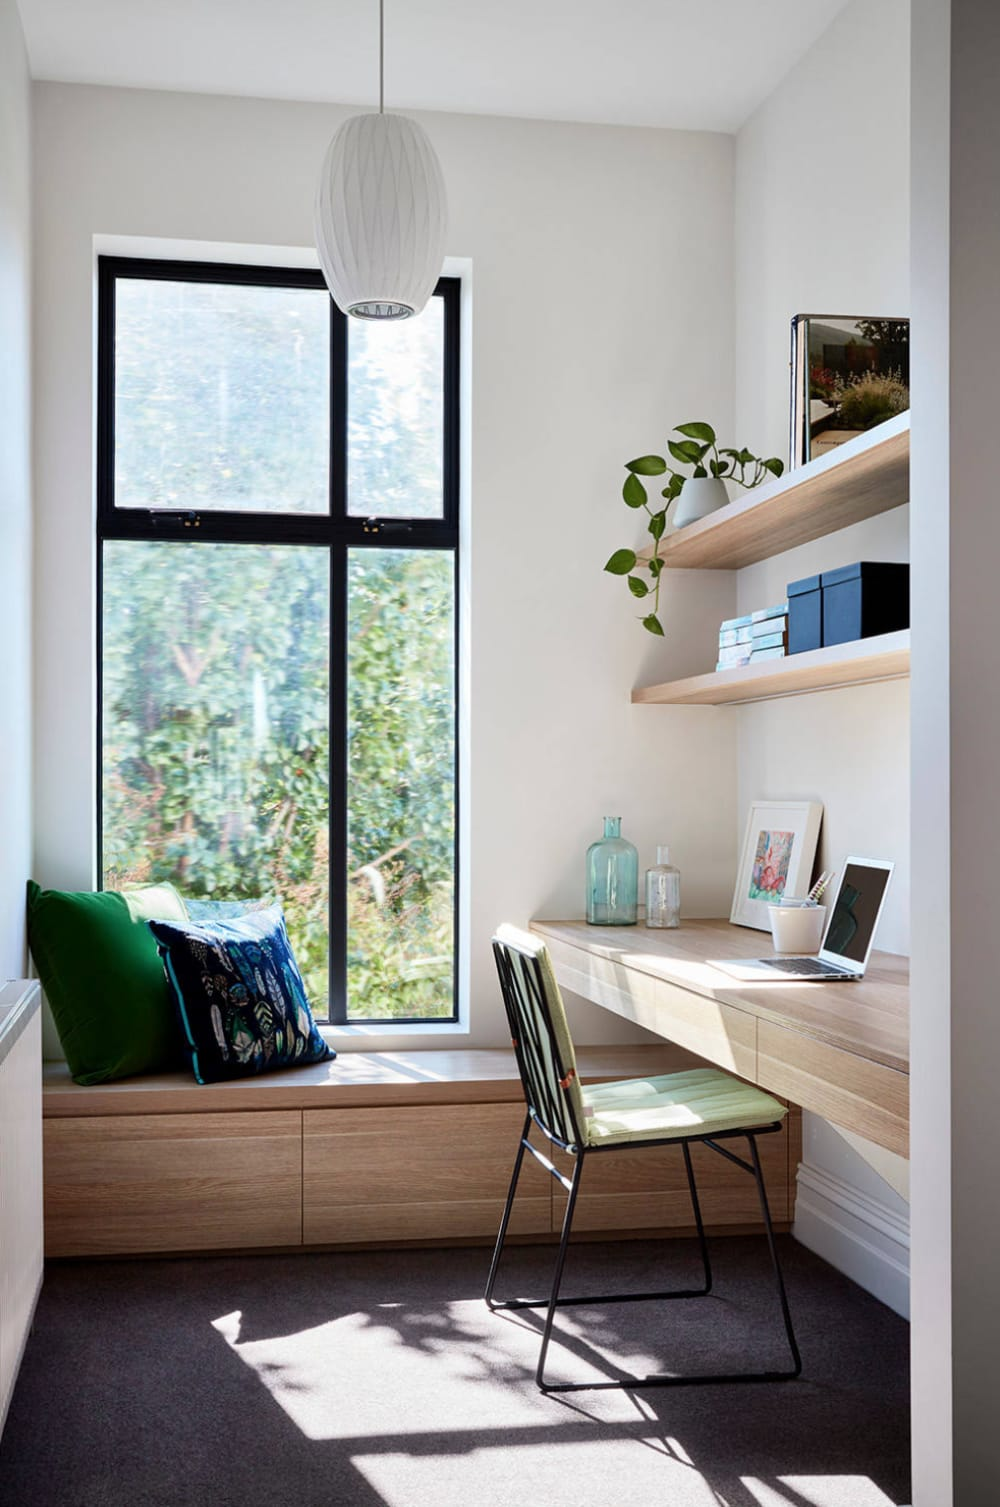 Silence_interior_design_trend_home_office_sipmdg.png